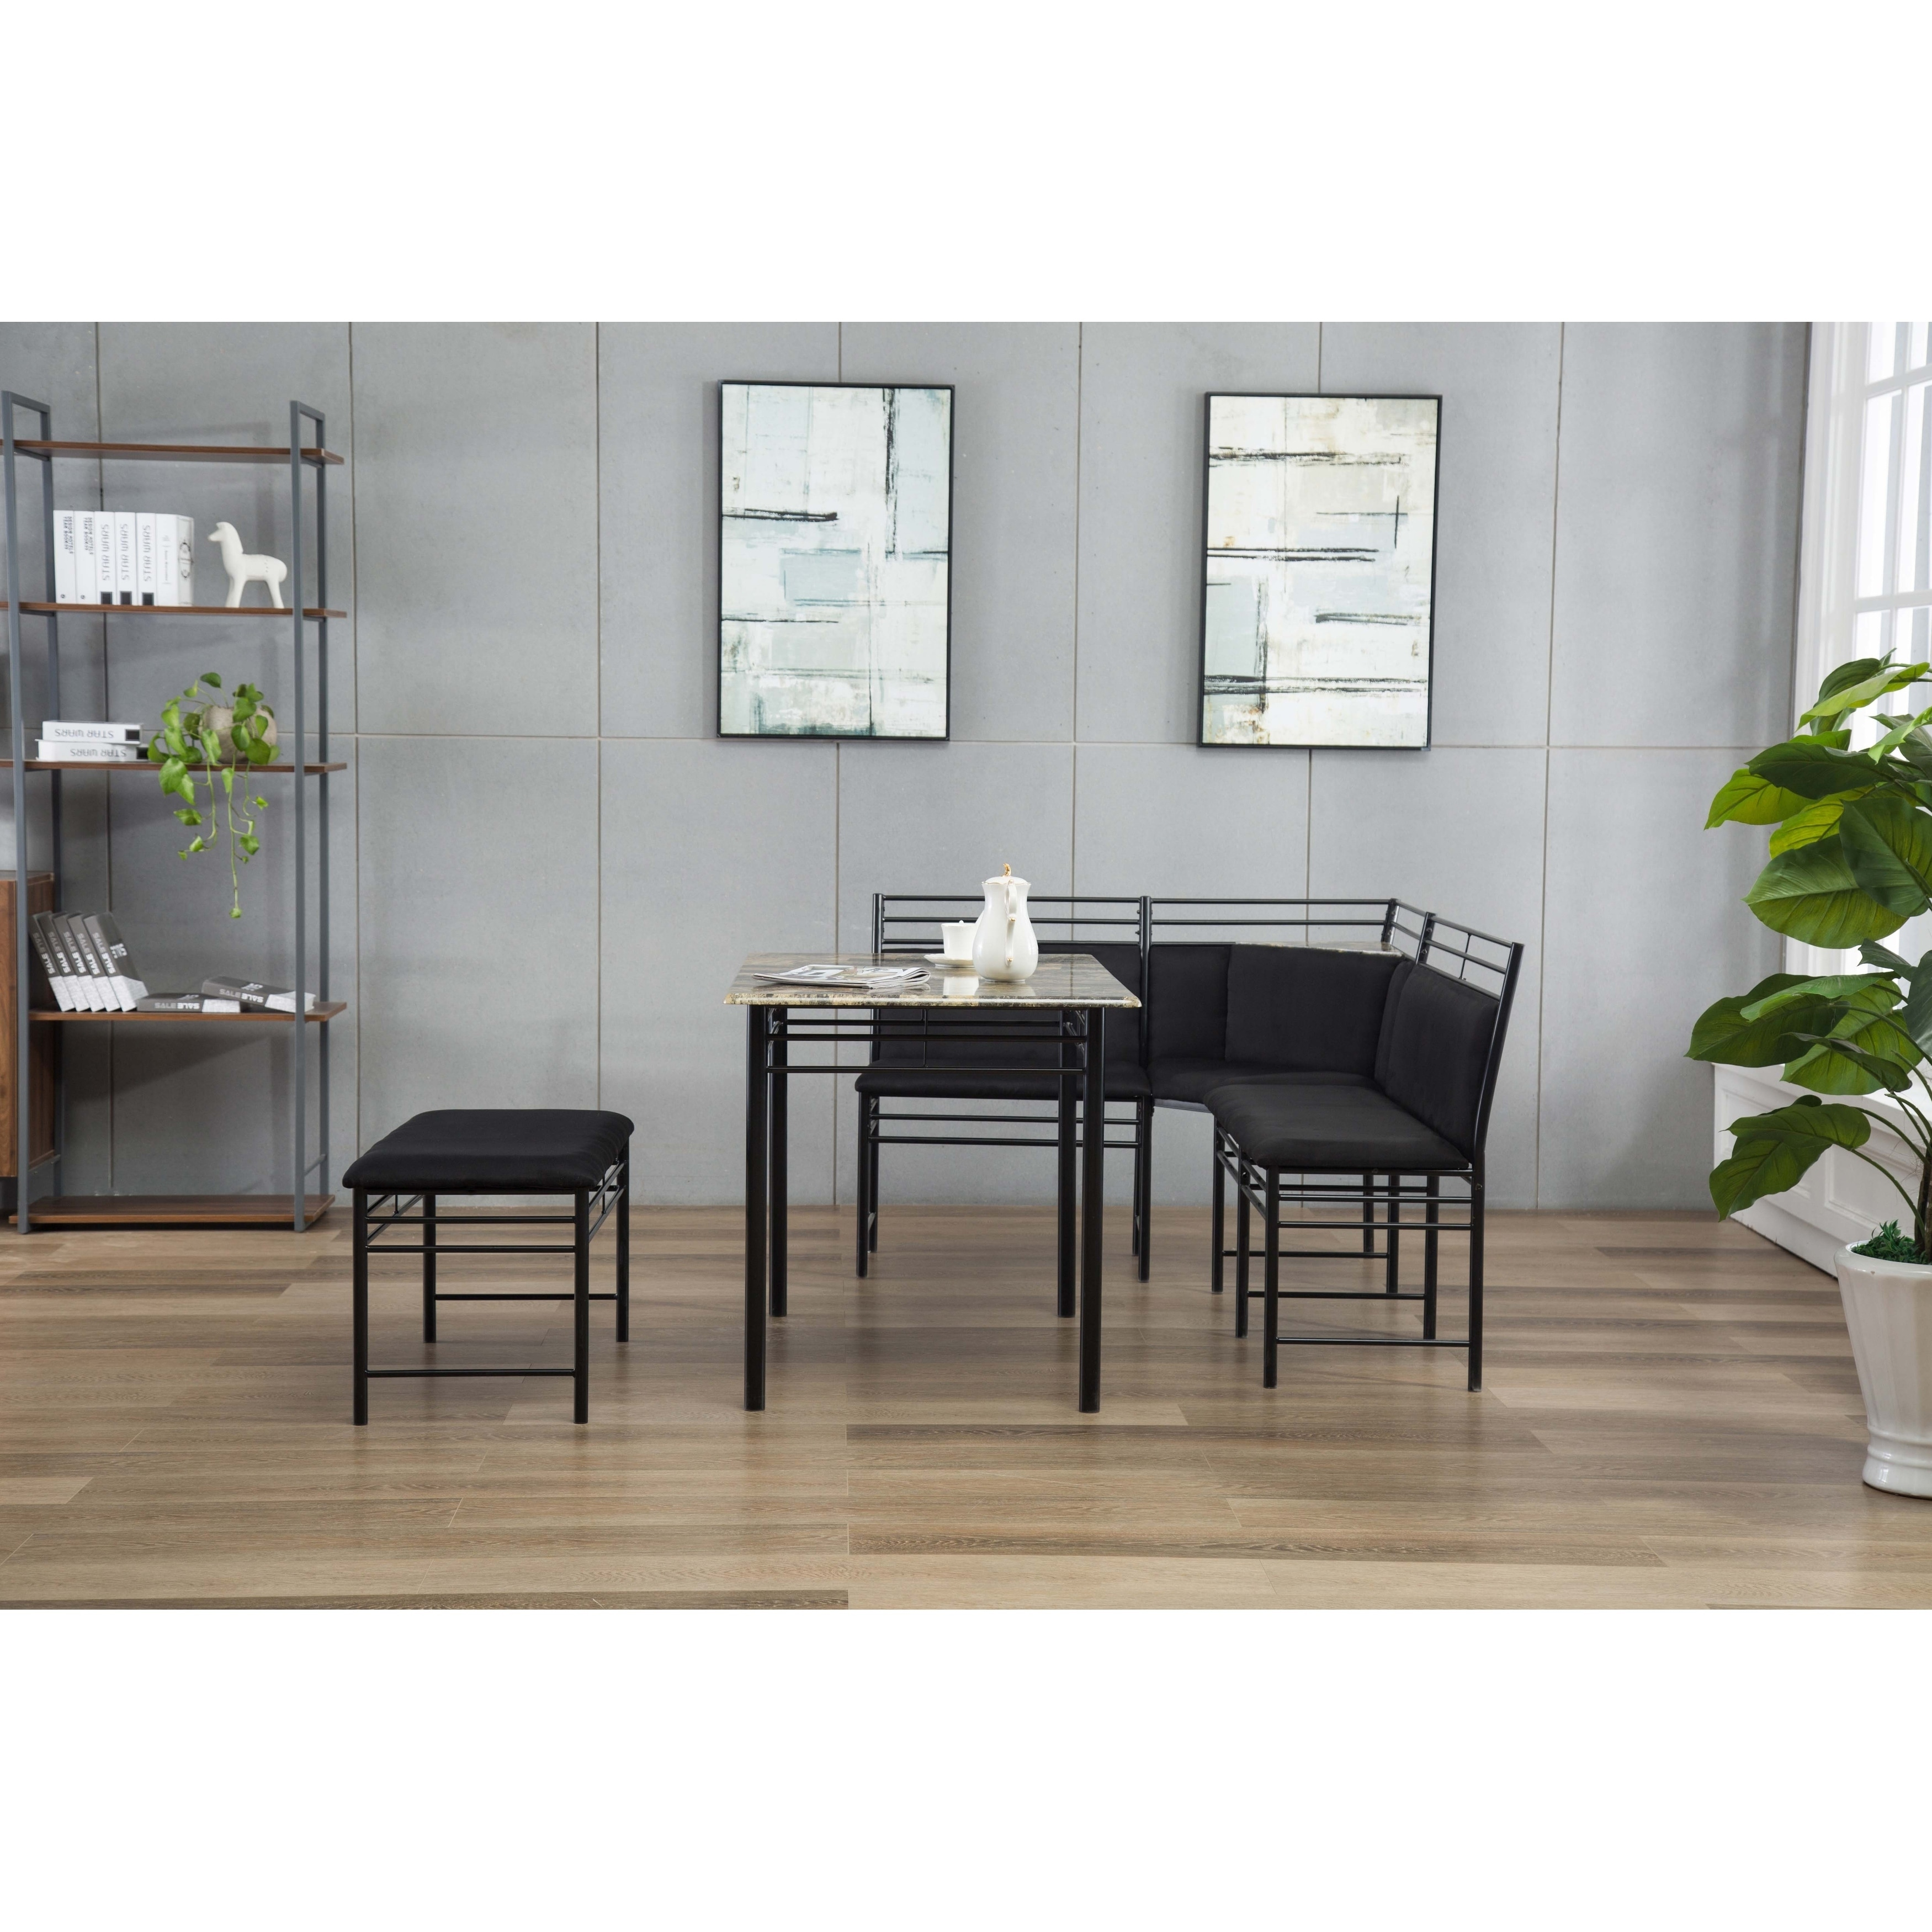 Shop Gareth Black Upholstered Metal Breakfast Nook Set   On Sale   Free  Shipping Today   Overstock.com   19561245